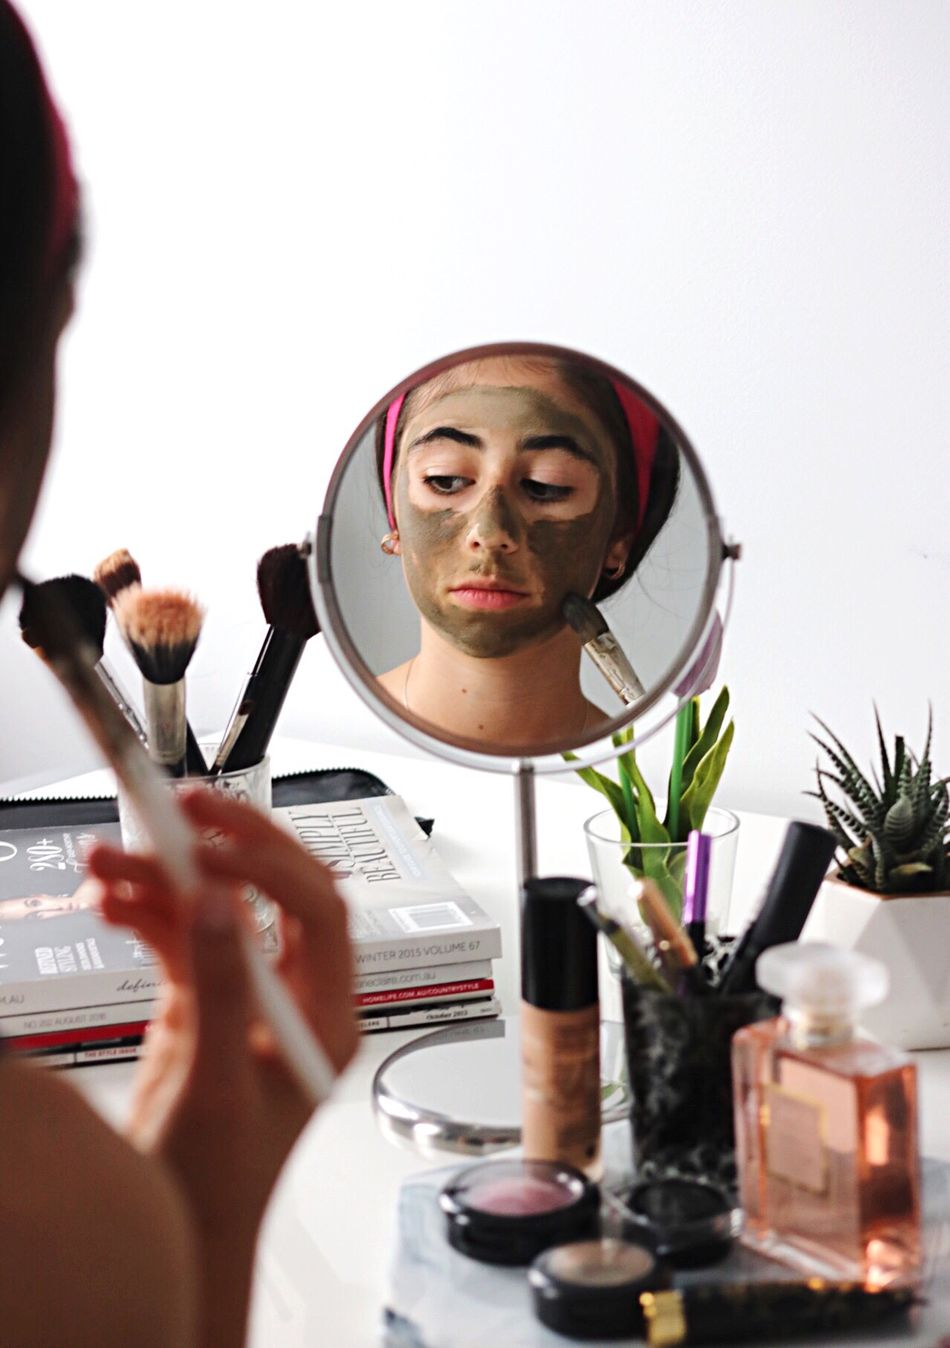 Make-up Brush Make-up Beauty Product Mirror Applying Indoors  Beauty Face Powder Mascara Self Improvement Young Adult Beautiful Woman Women Human Body Part Adult One Person Young Women People Day